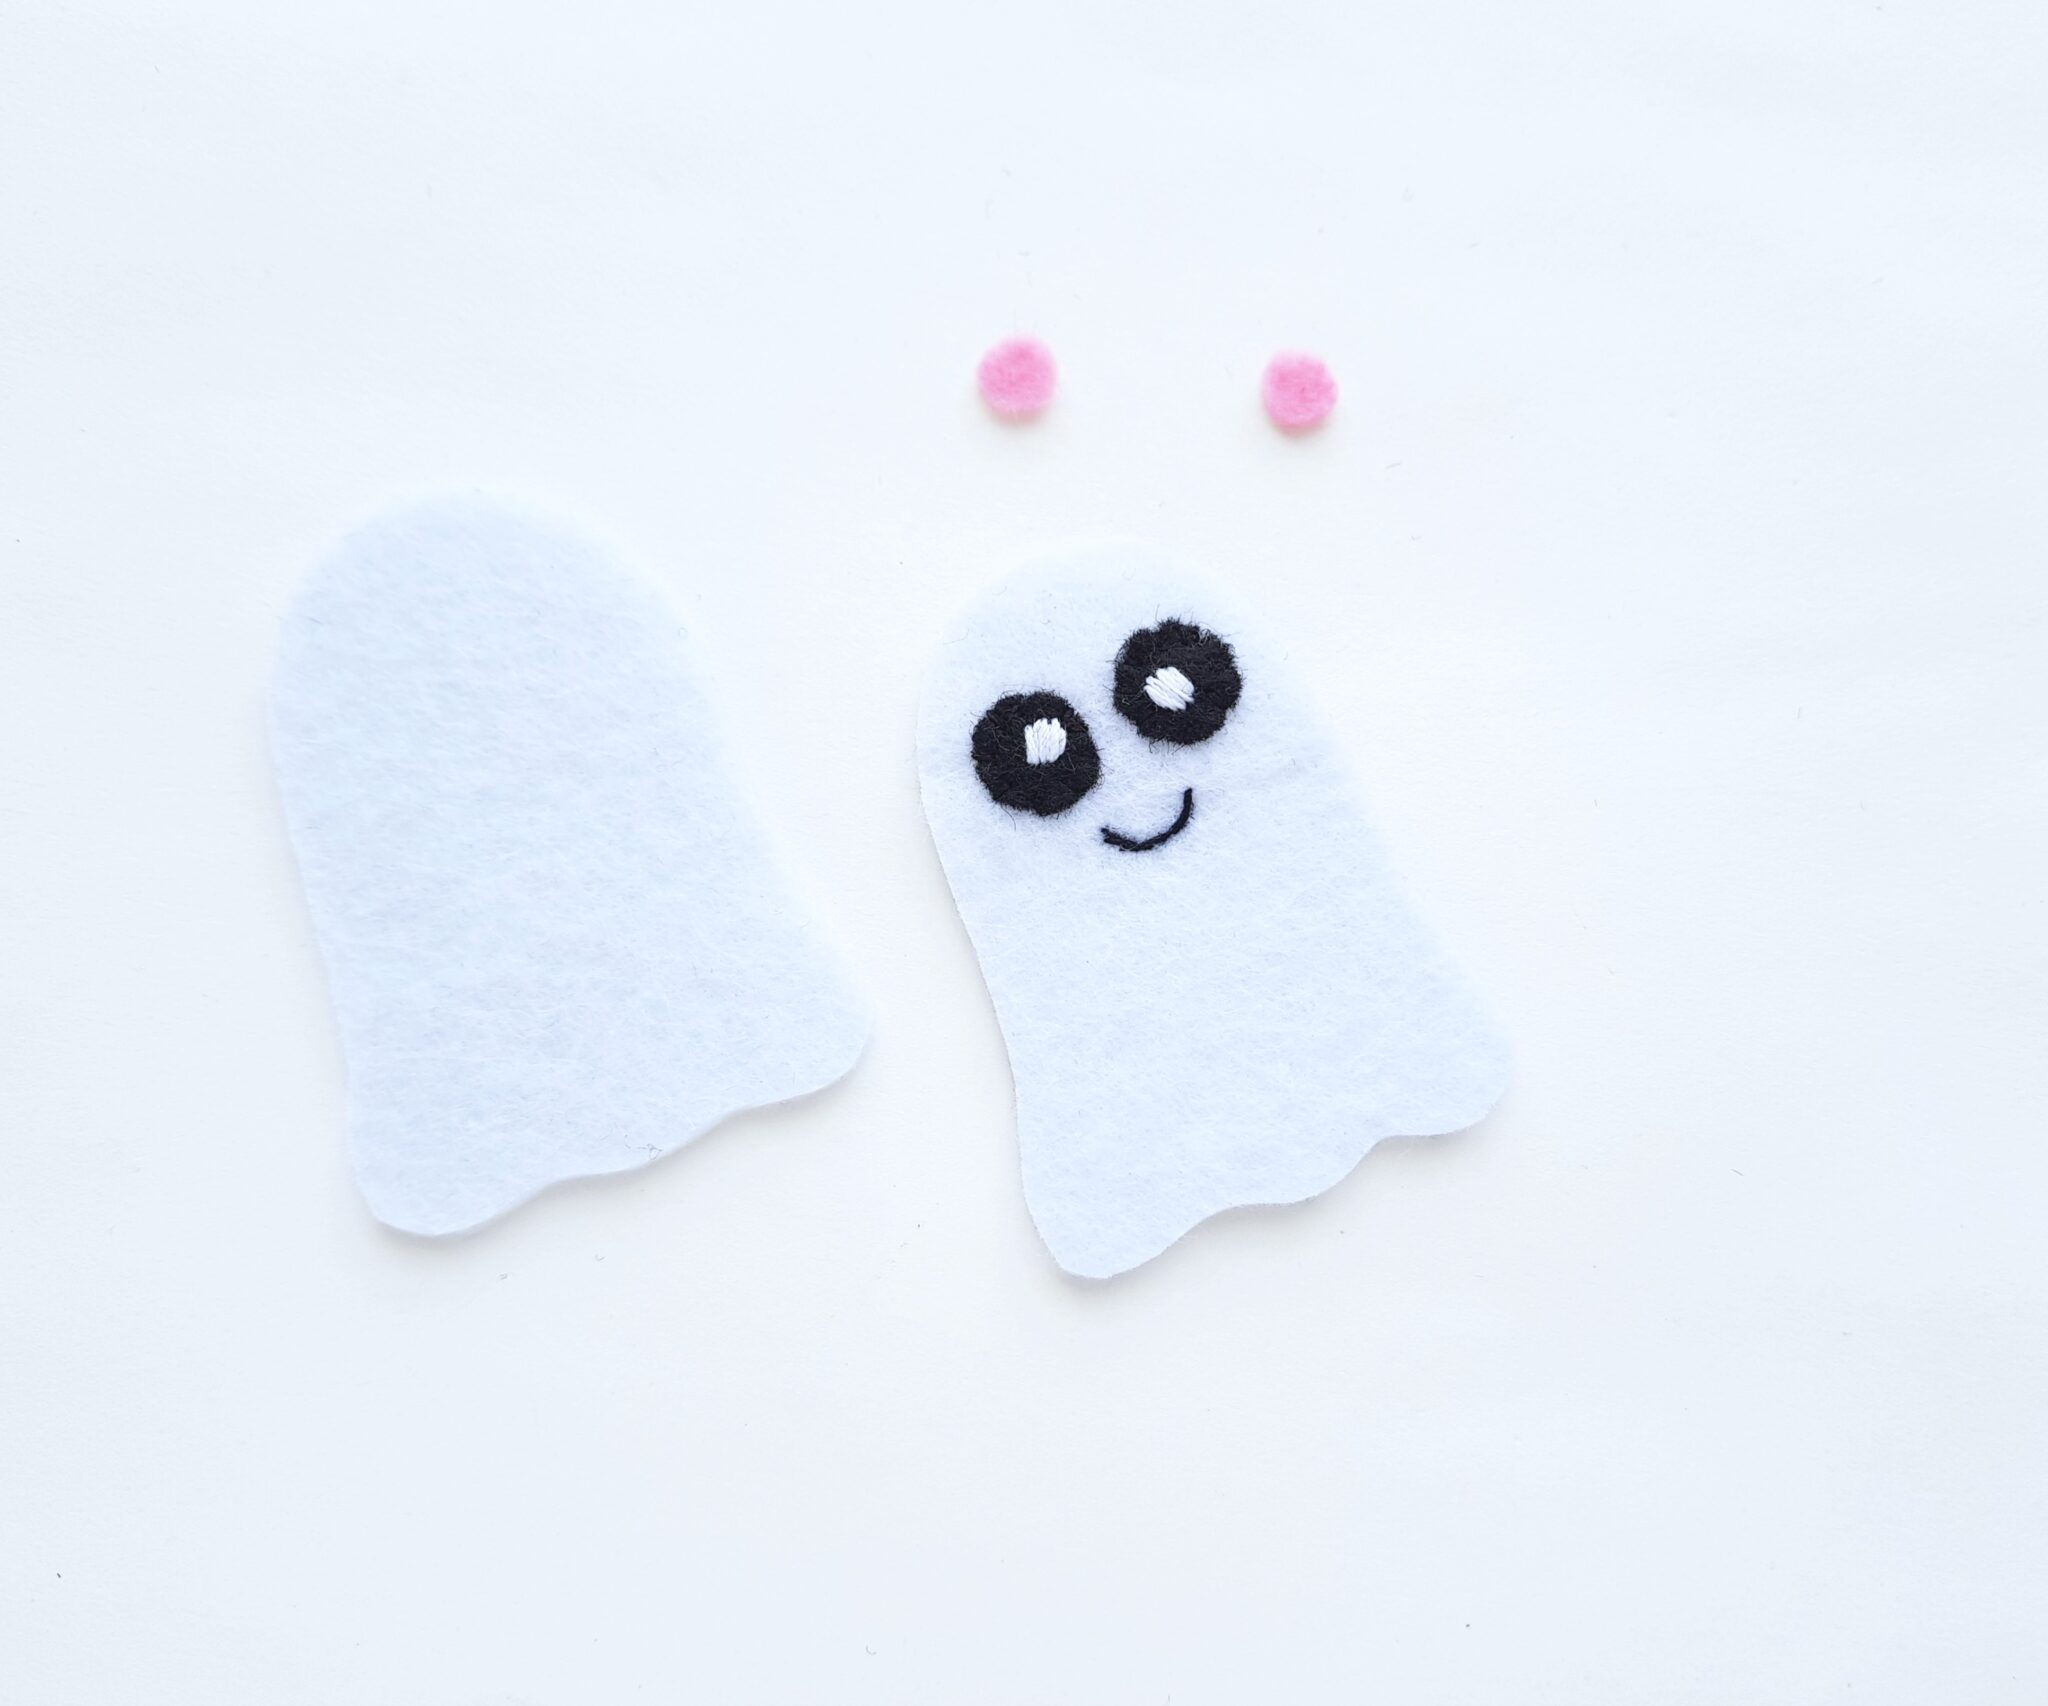 The eyes and smile are sewn onto the felt ghost plushie.